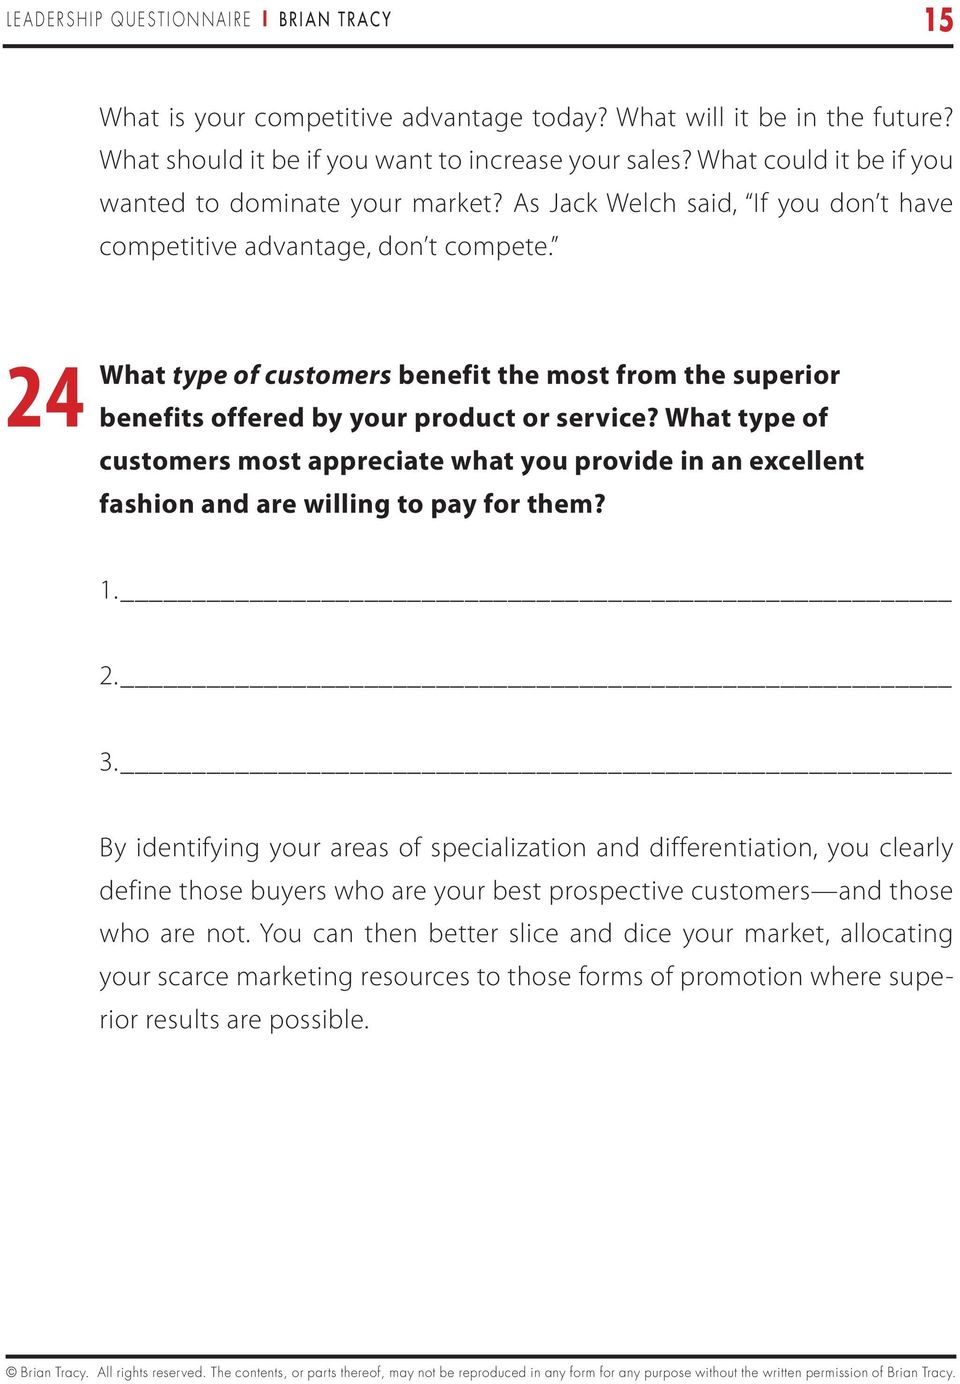 24 What type of customers benefit the most from the superior benefits offered by your product or service?